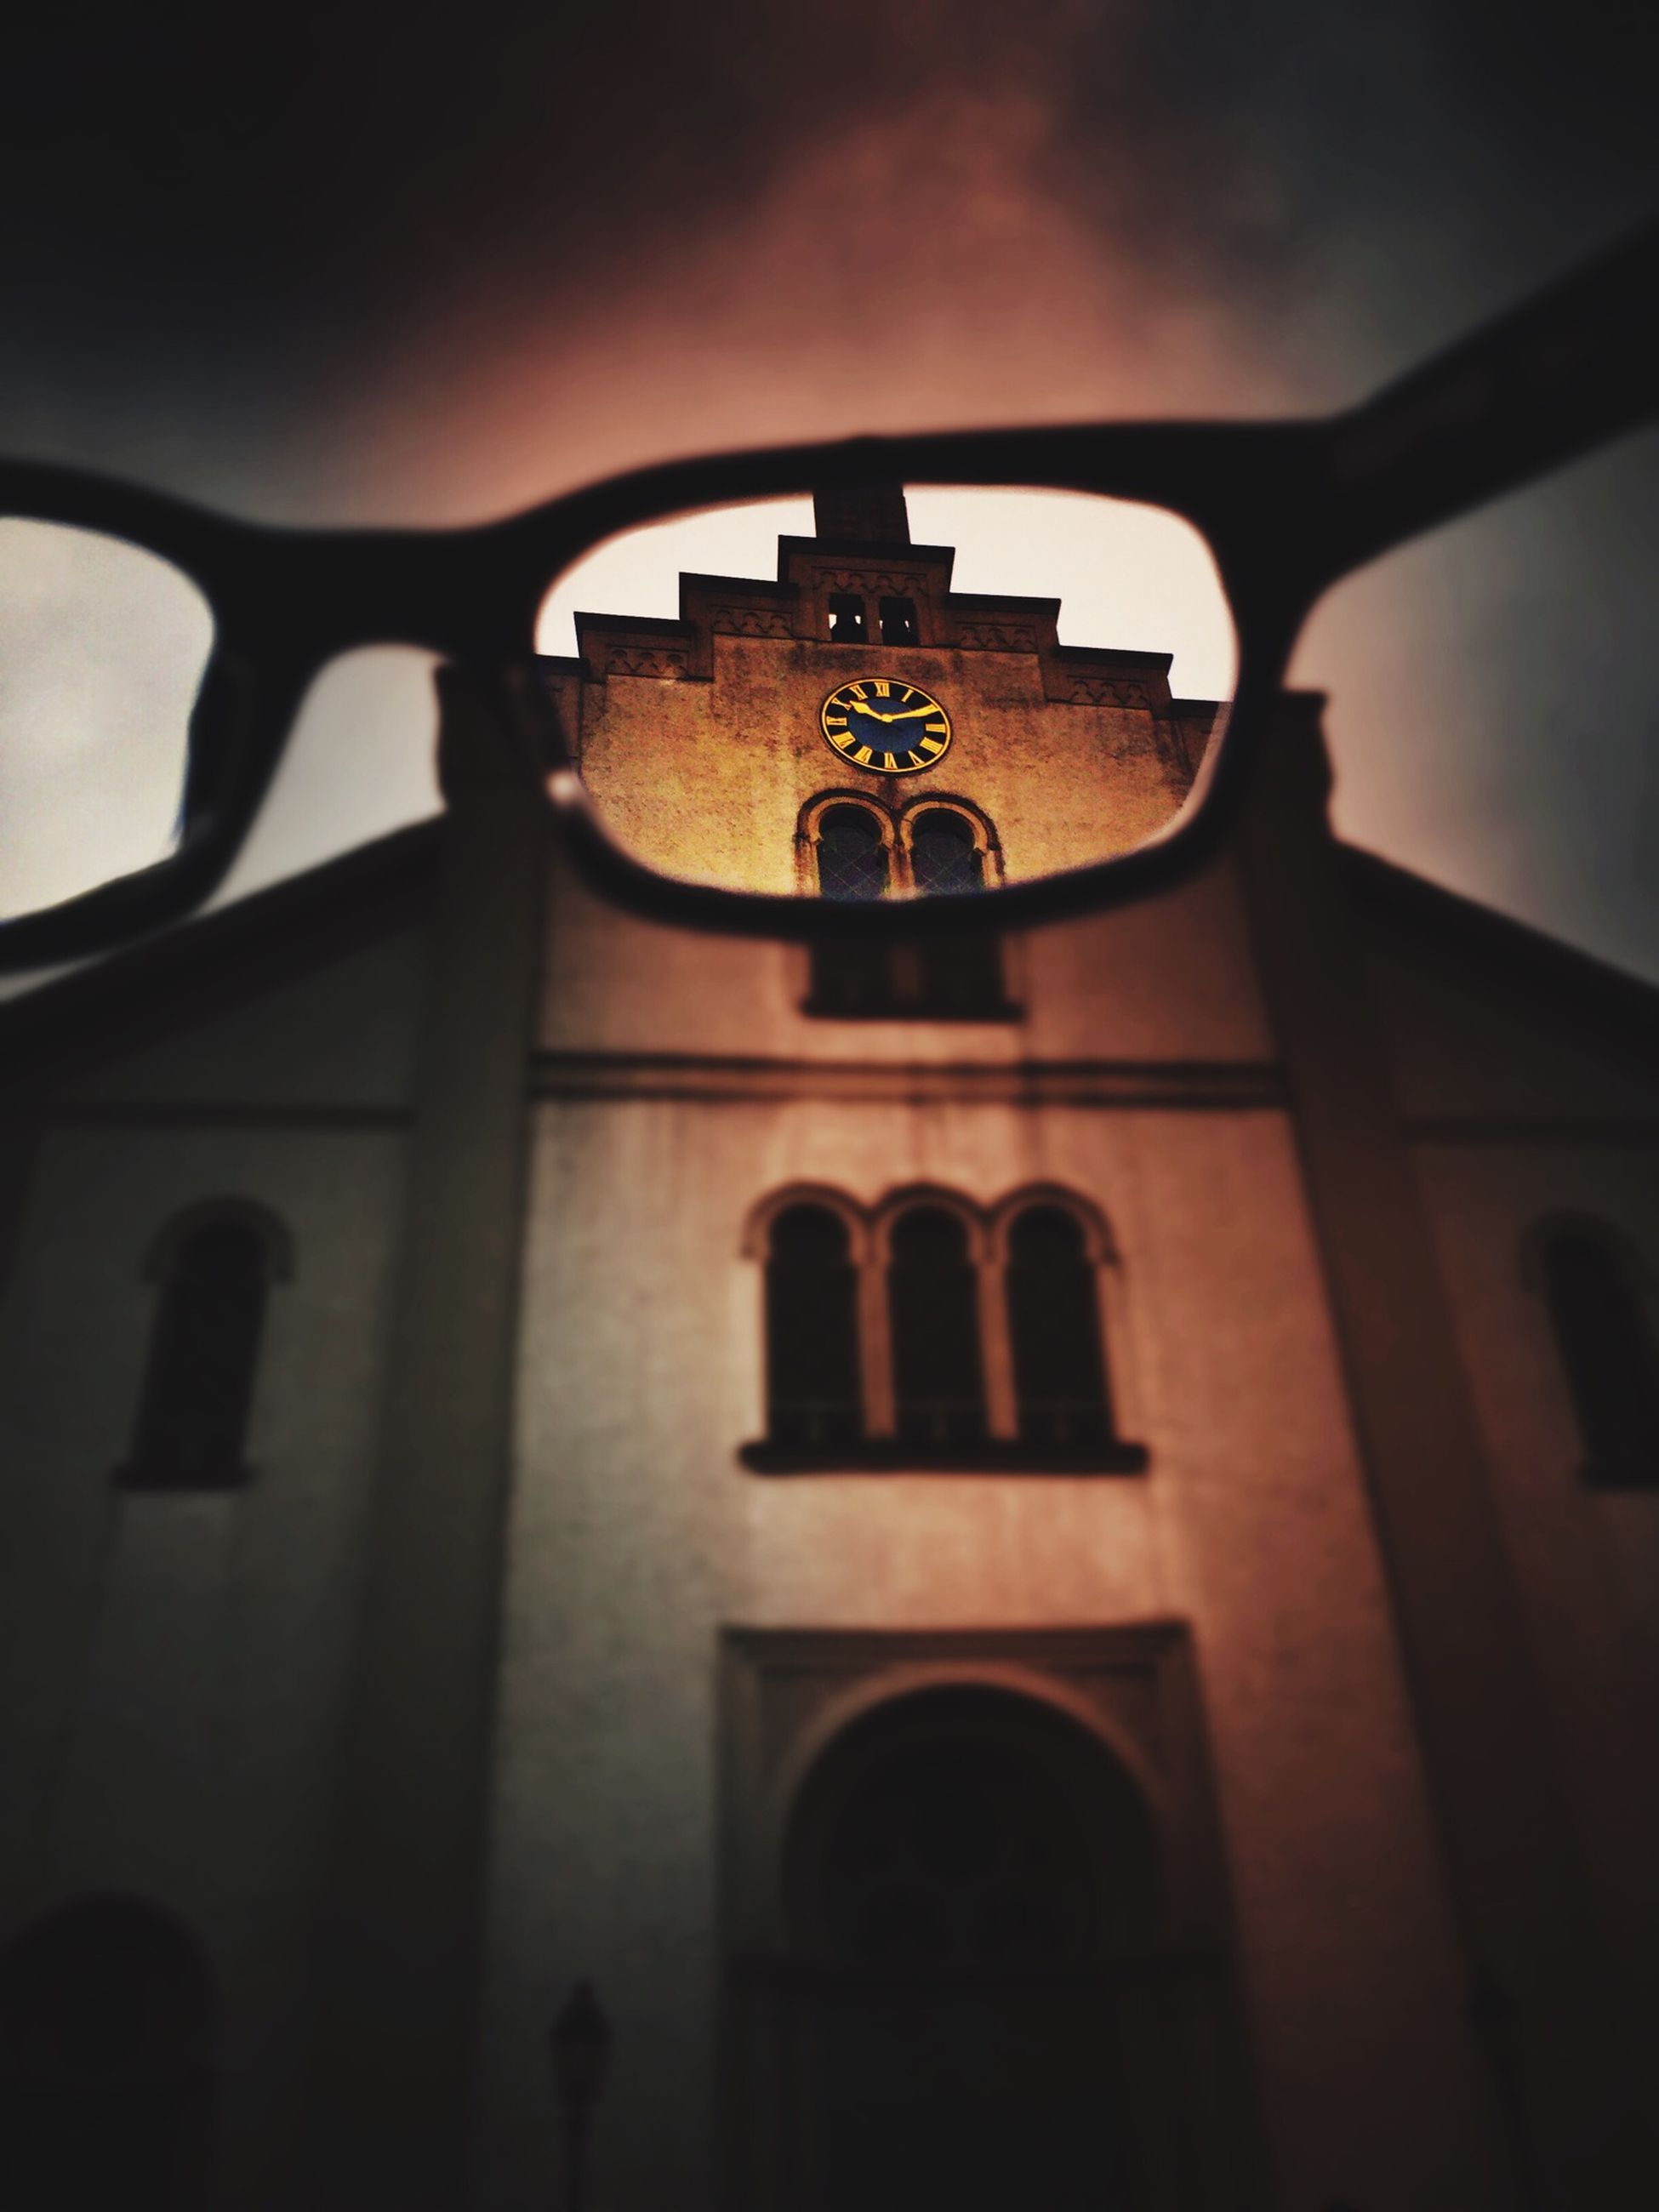 low angle view, building exterior, architecture, built structure, church, religion, sky, window, lighting equipment, clock, no people, close-up, time, outdoors, communication, old-fashioned, day, focus on foreground